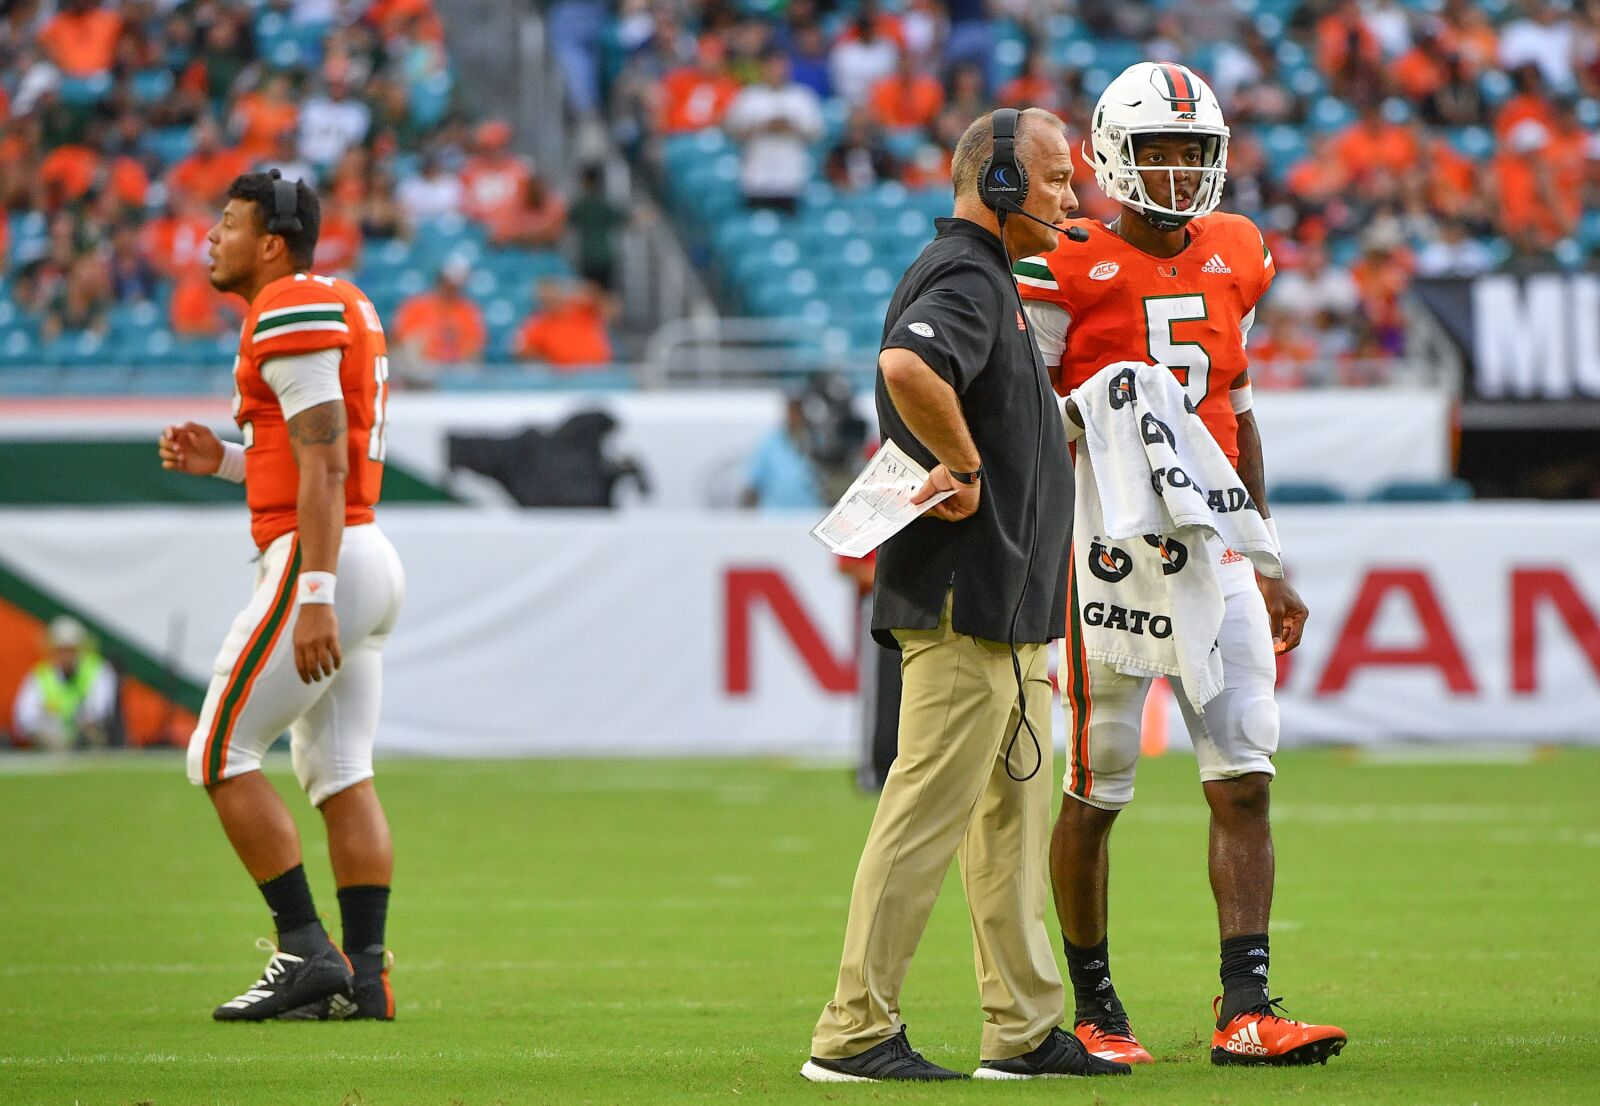 Mark Richt comments seem more genuine about Miami QB than OTs